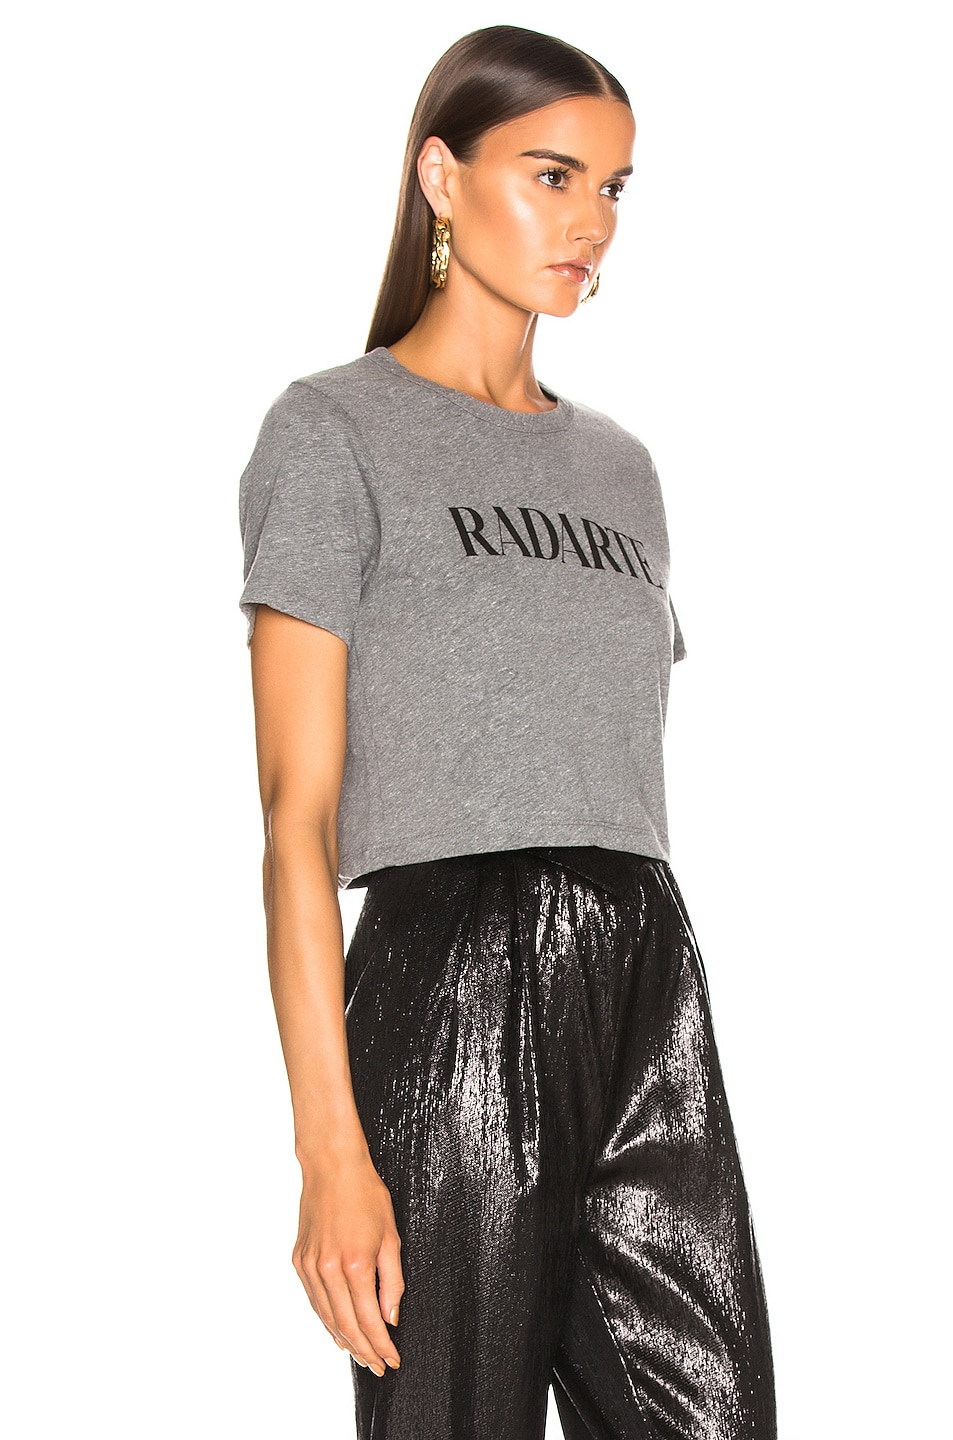 Image 2 of Rodarte Cropped Radarte T Shirt in Grey & Black